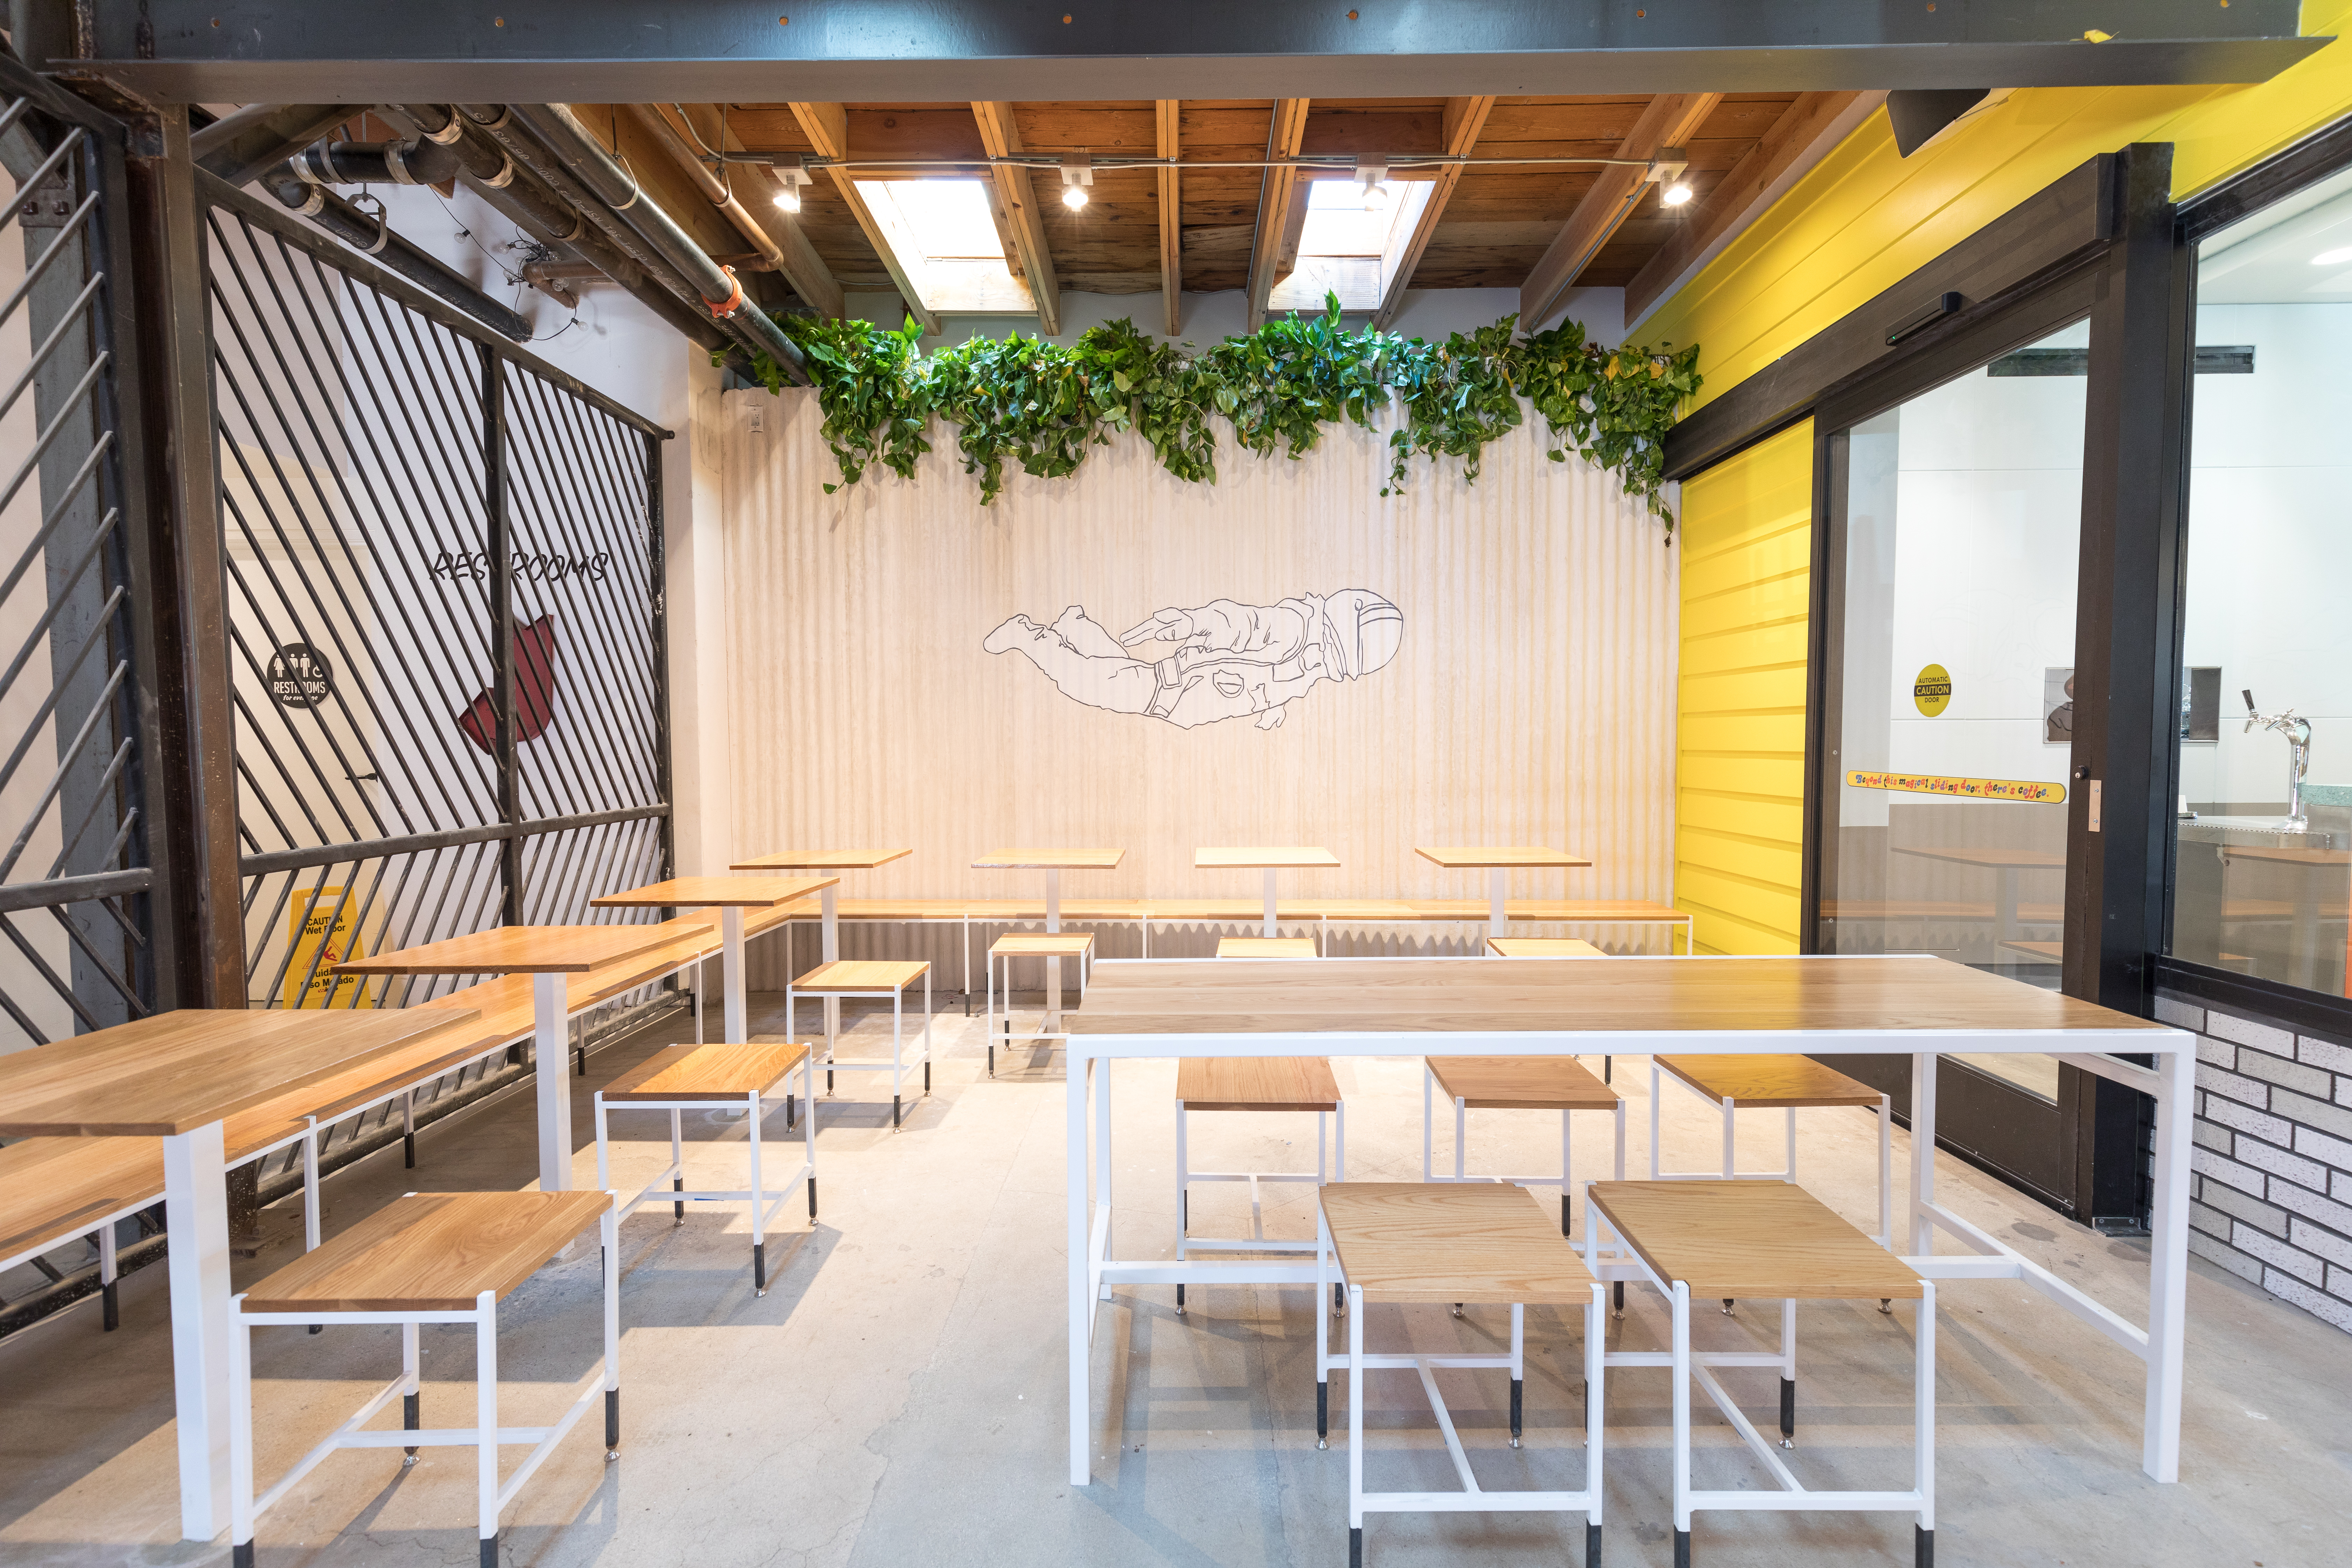 The Best Coffee Shops For Getting Work Done In Los Angeles